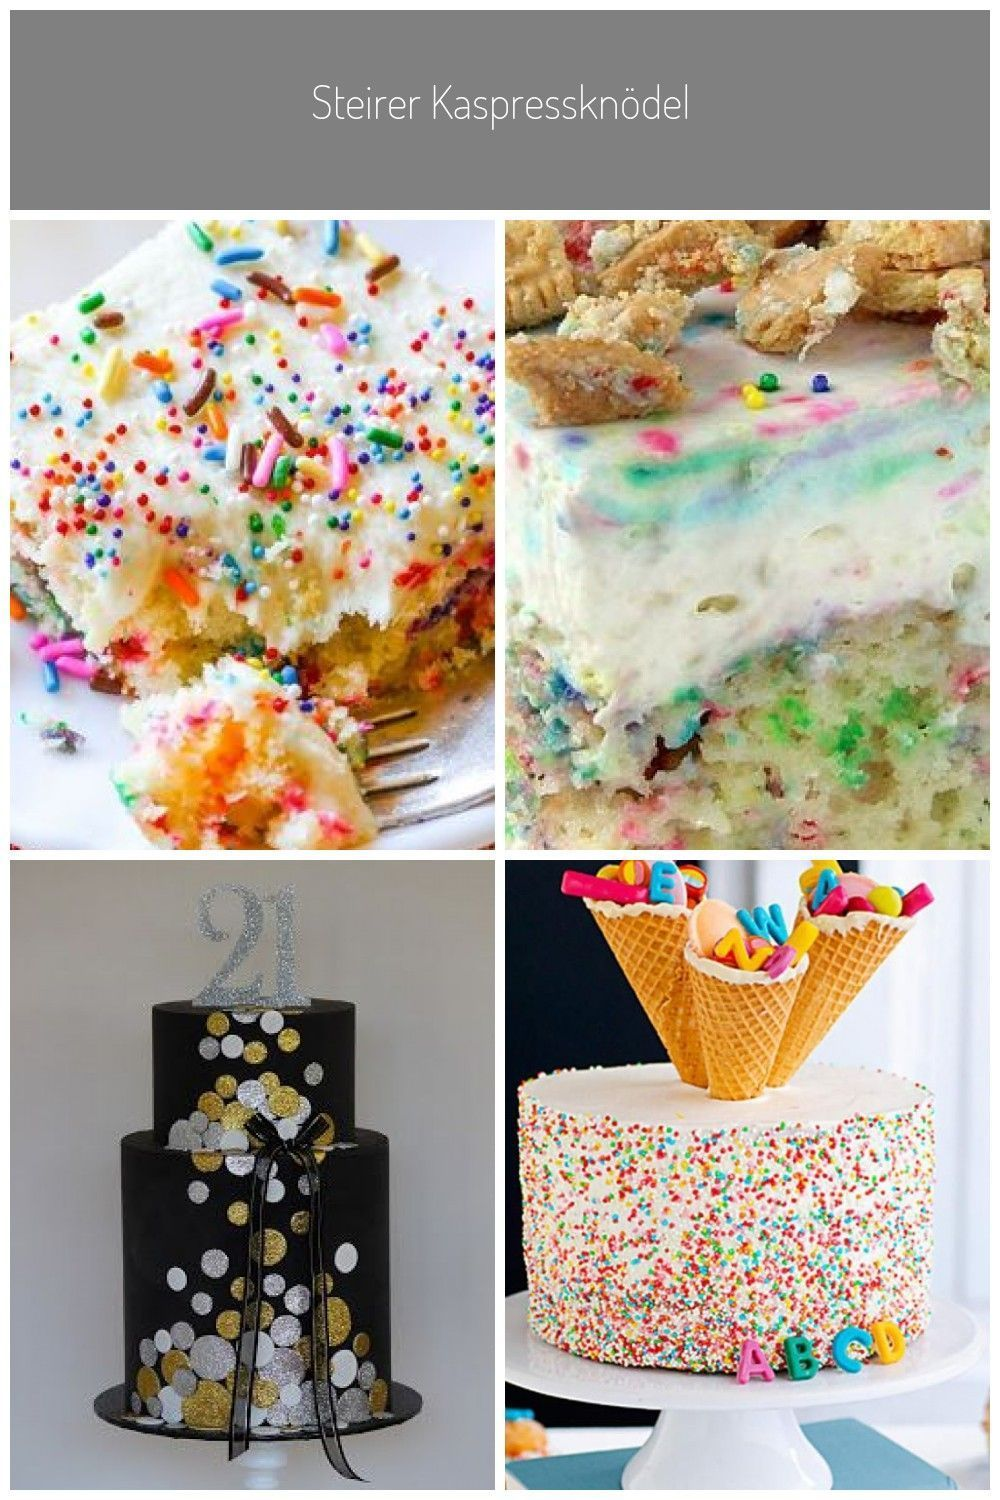 Funfetti Sheet Cake - To feed a hungry, sprinkle loving crowd! Love this recipe.... -  Funfetti Sheet Cake – To feed a hungry, sprinkle loving crowd! Love this recipe. #konfettikuchen  - #Cake #crowd #feed       I whipped I whipped I mixed I Made You Cake:  Cake Baking Methods  The indispensable pastry, cakes, which take place in almost all cultures, combine different tastes, creating a festive atmosphere on the ... #cake #Crowd #feed #Funfetti #Hungry #Love #loving #recipe #SHEET #sprinkle